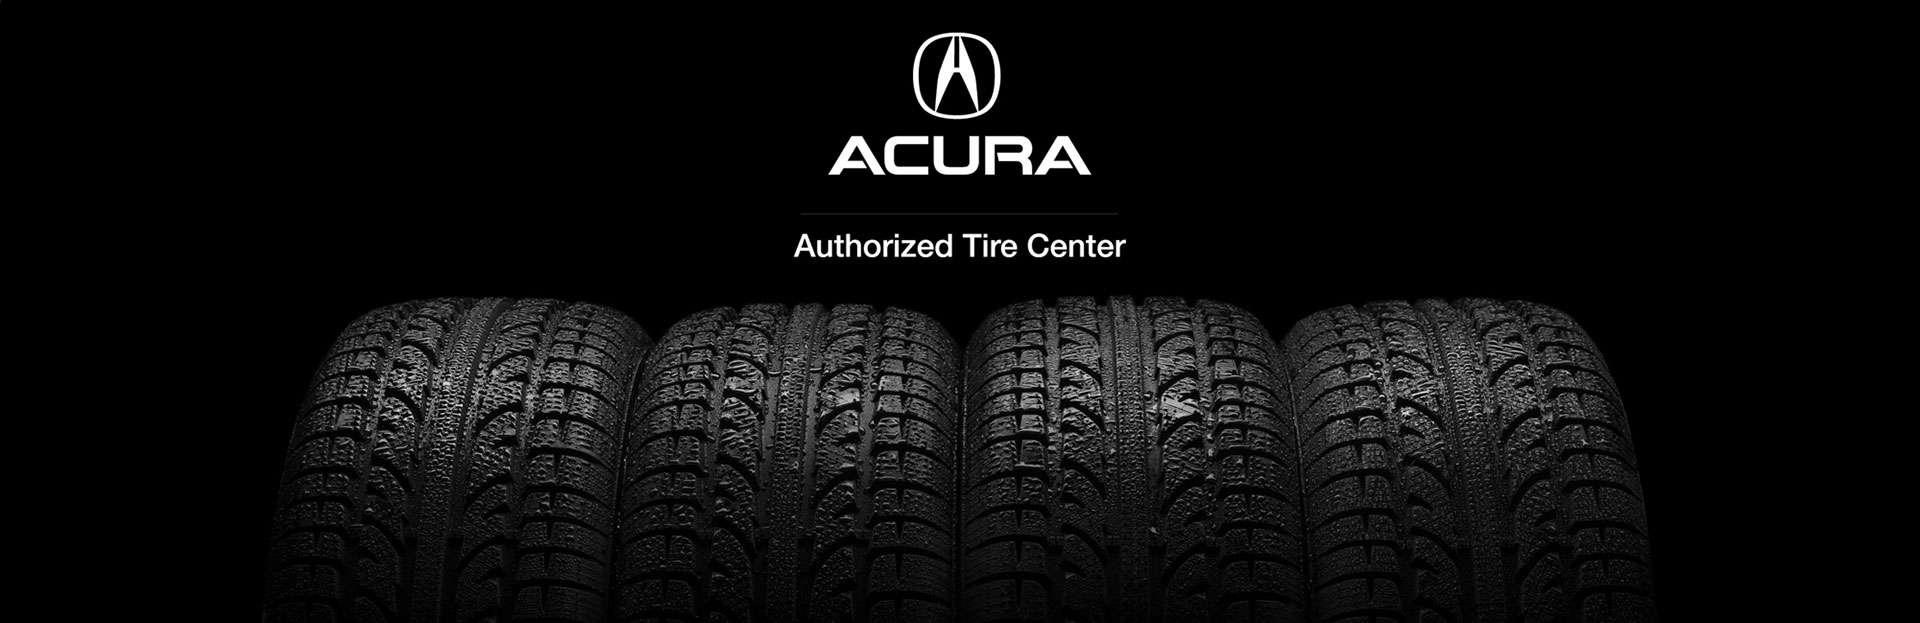 Acura Approved Tire Center